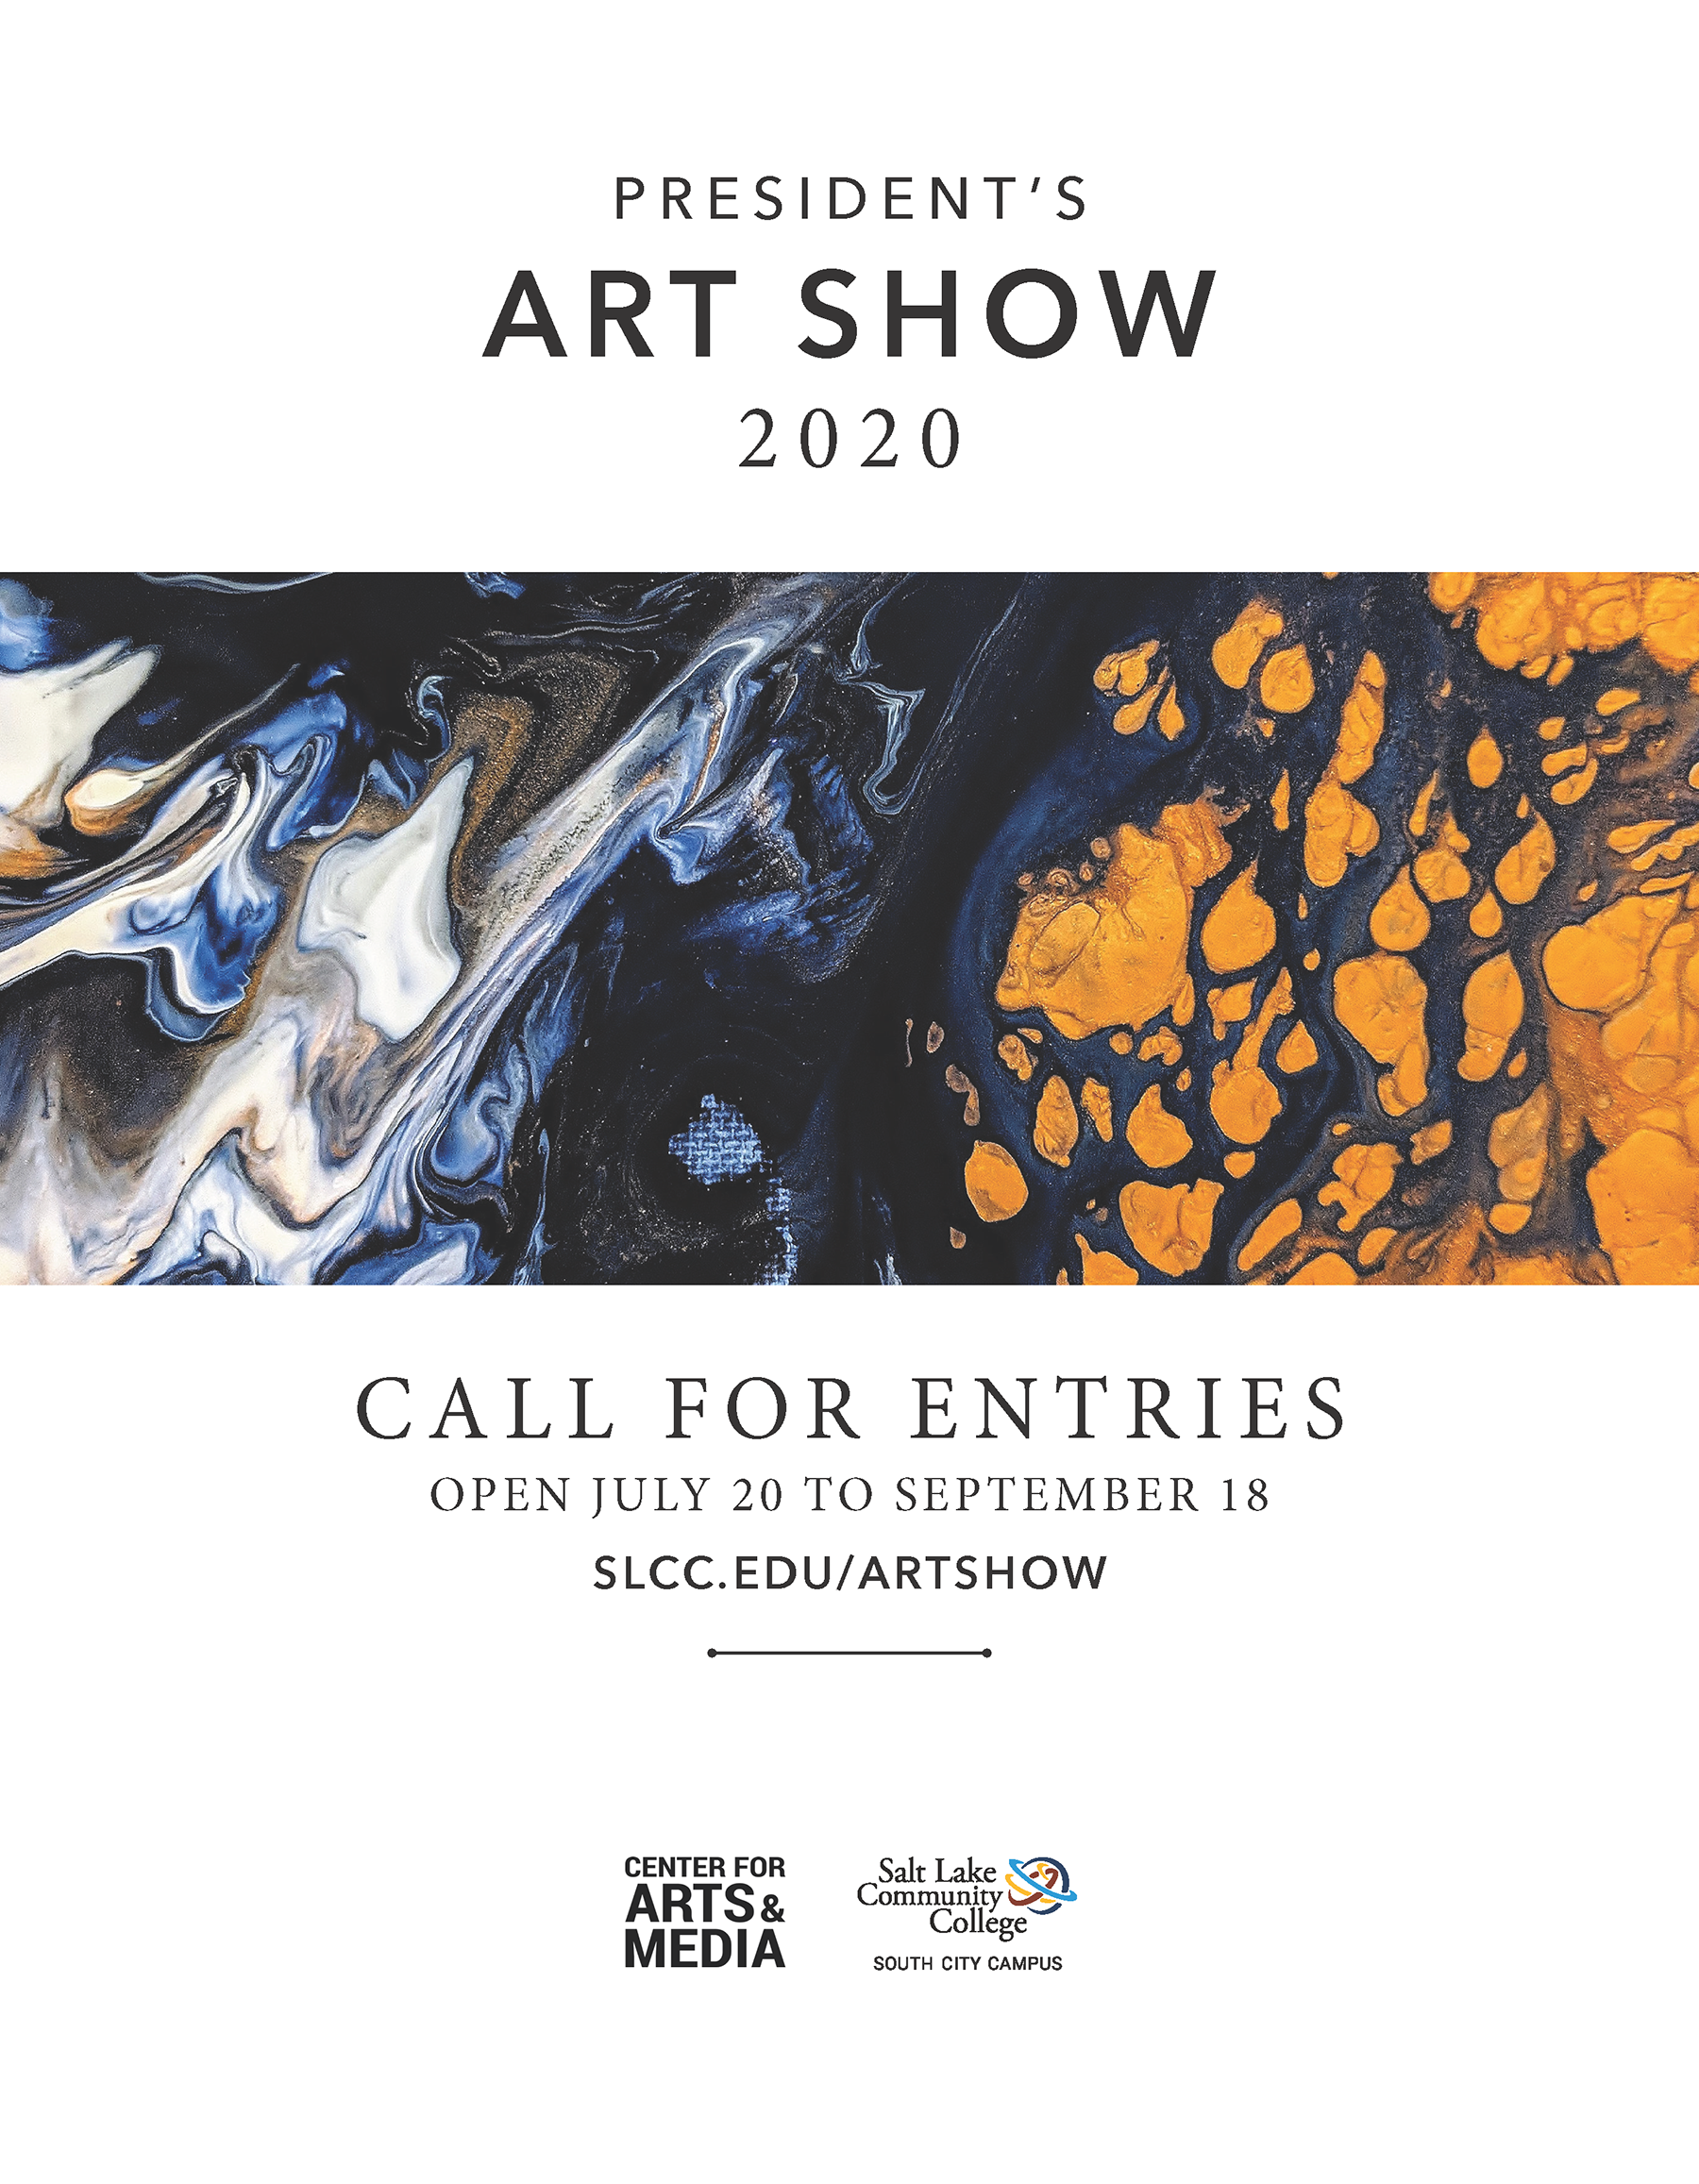 SLCC Presidents Art show call for entries